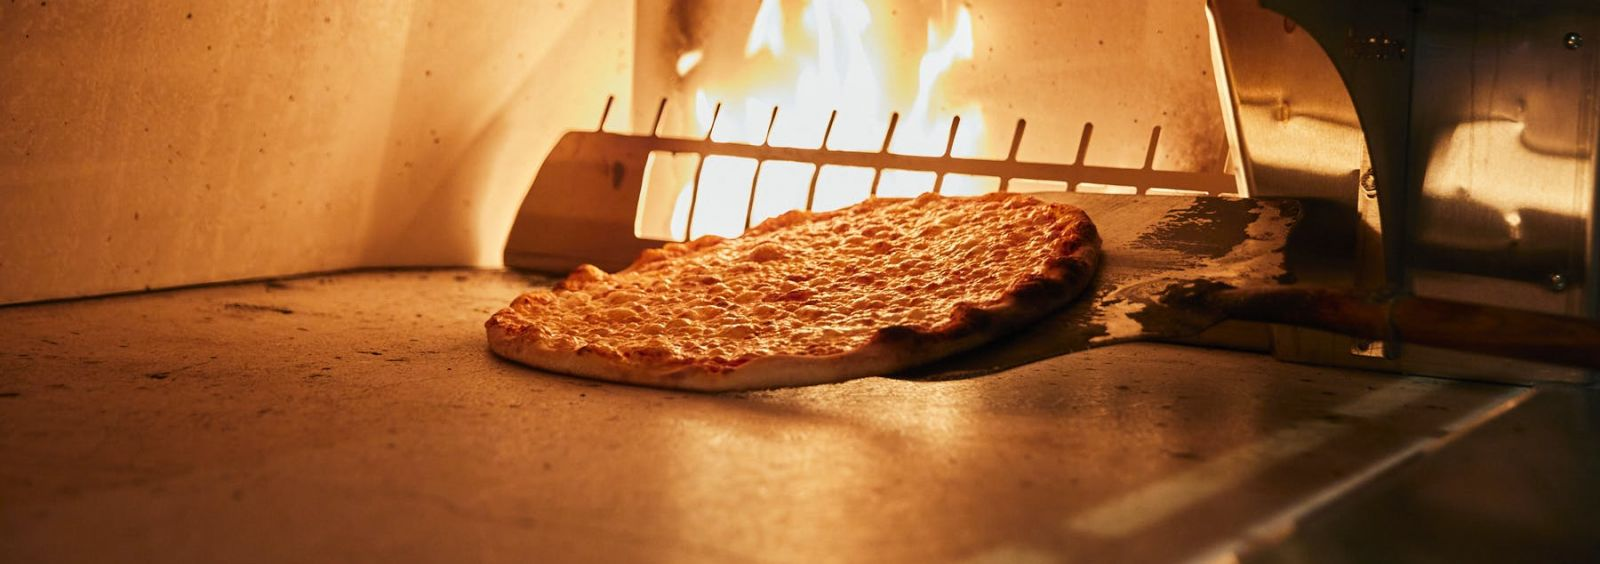 pizza in a pizza oven